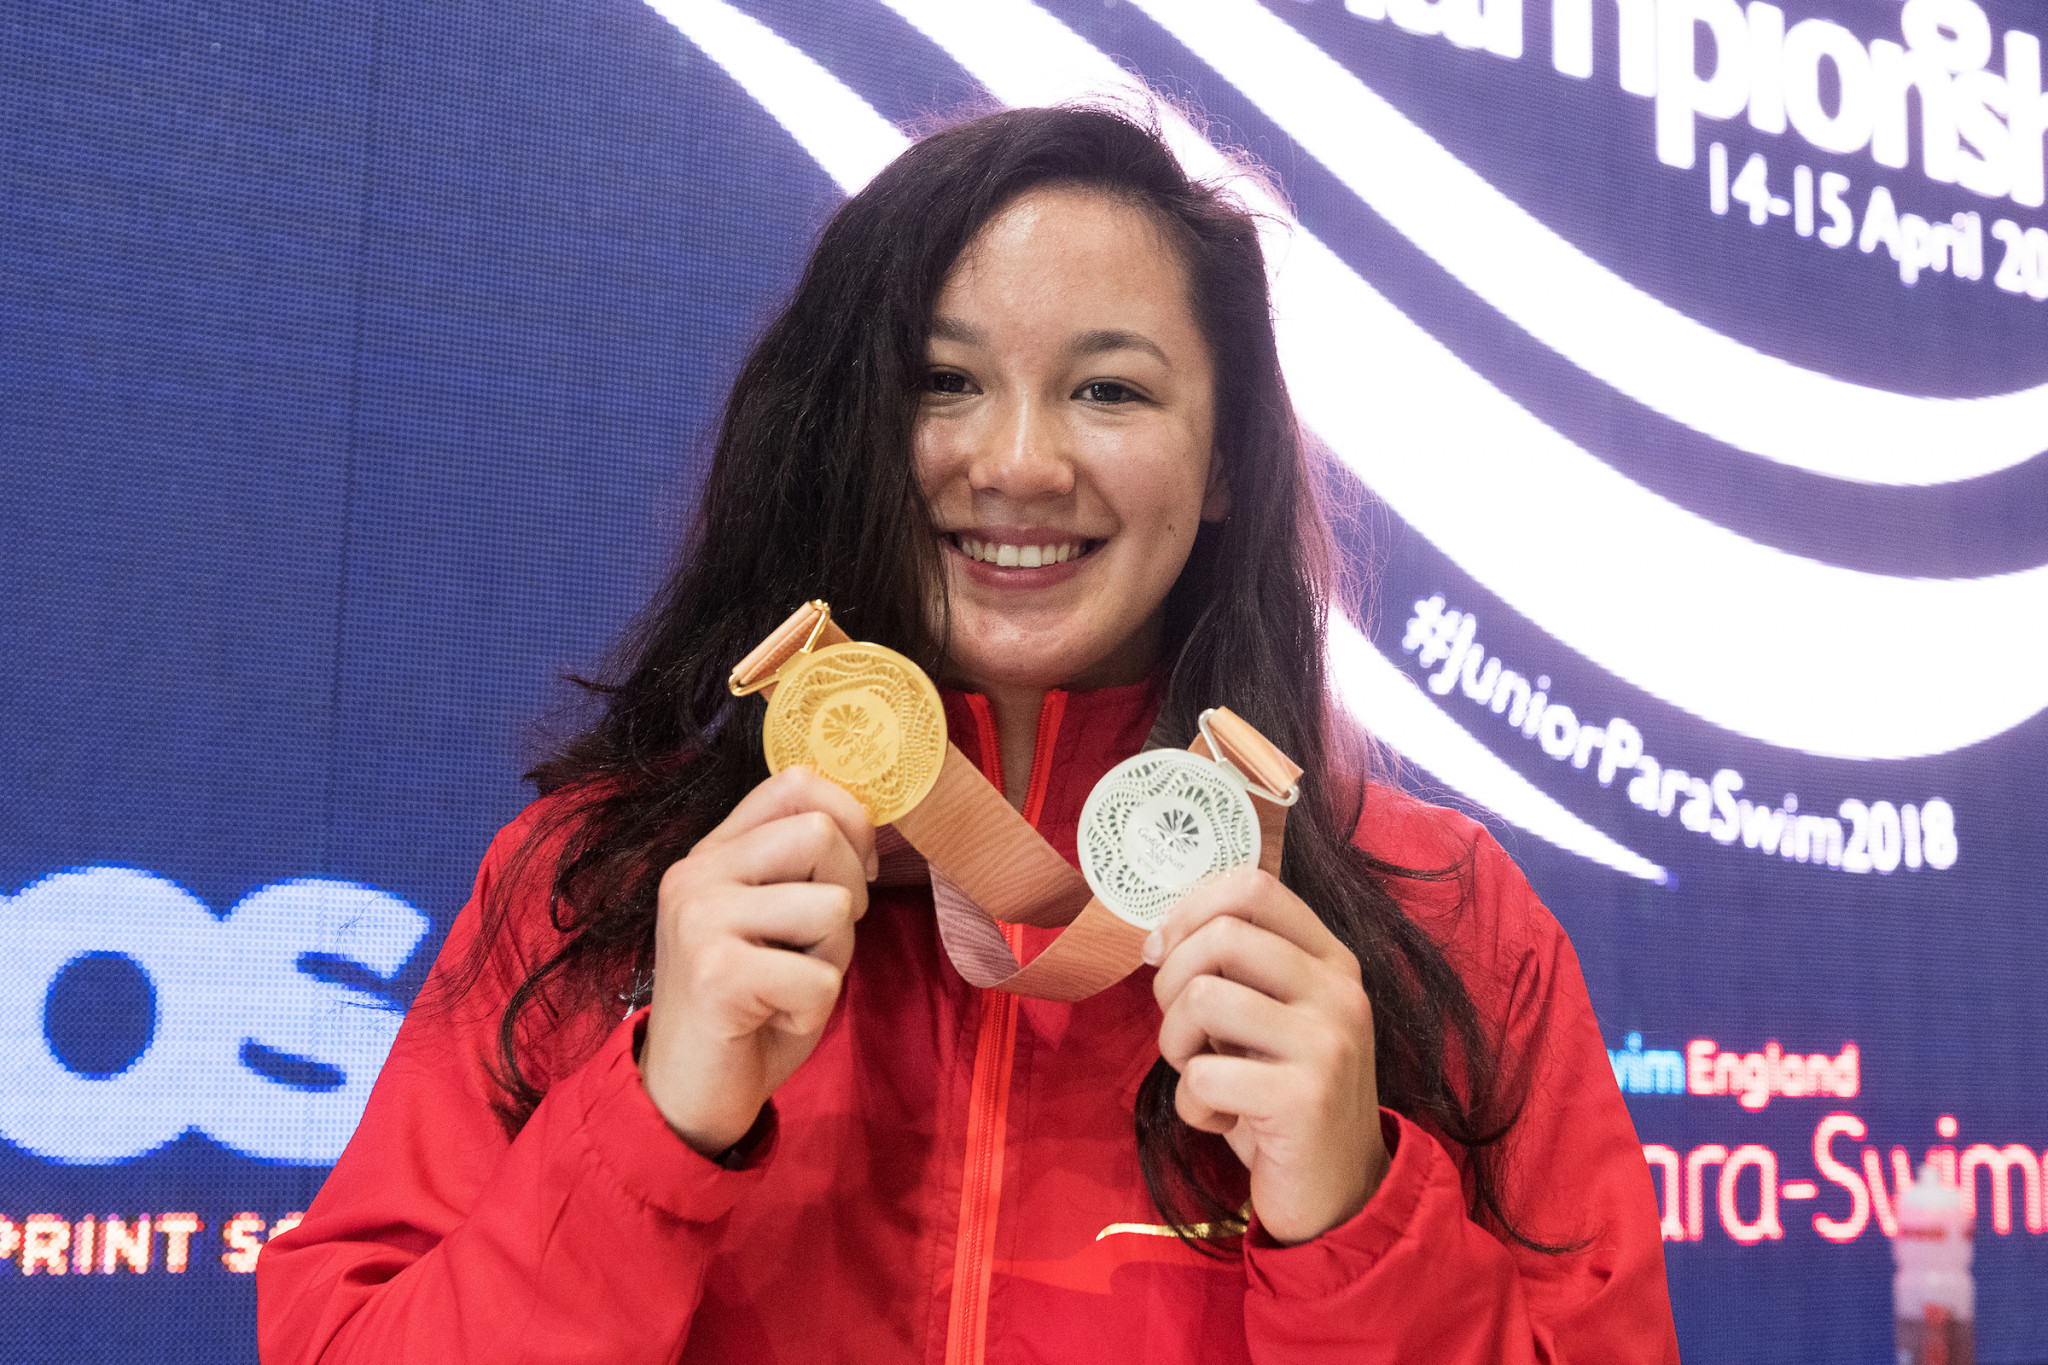 Double Gold Coast 2018 medallist attends National Junior Para-Swimming Championships in Southampton